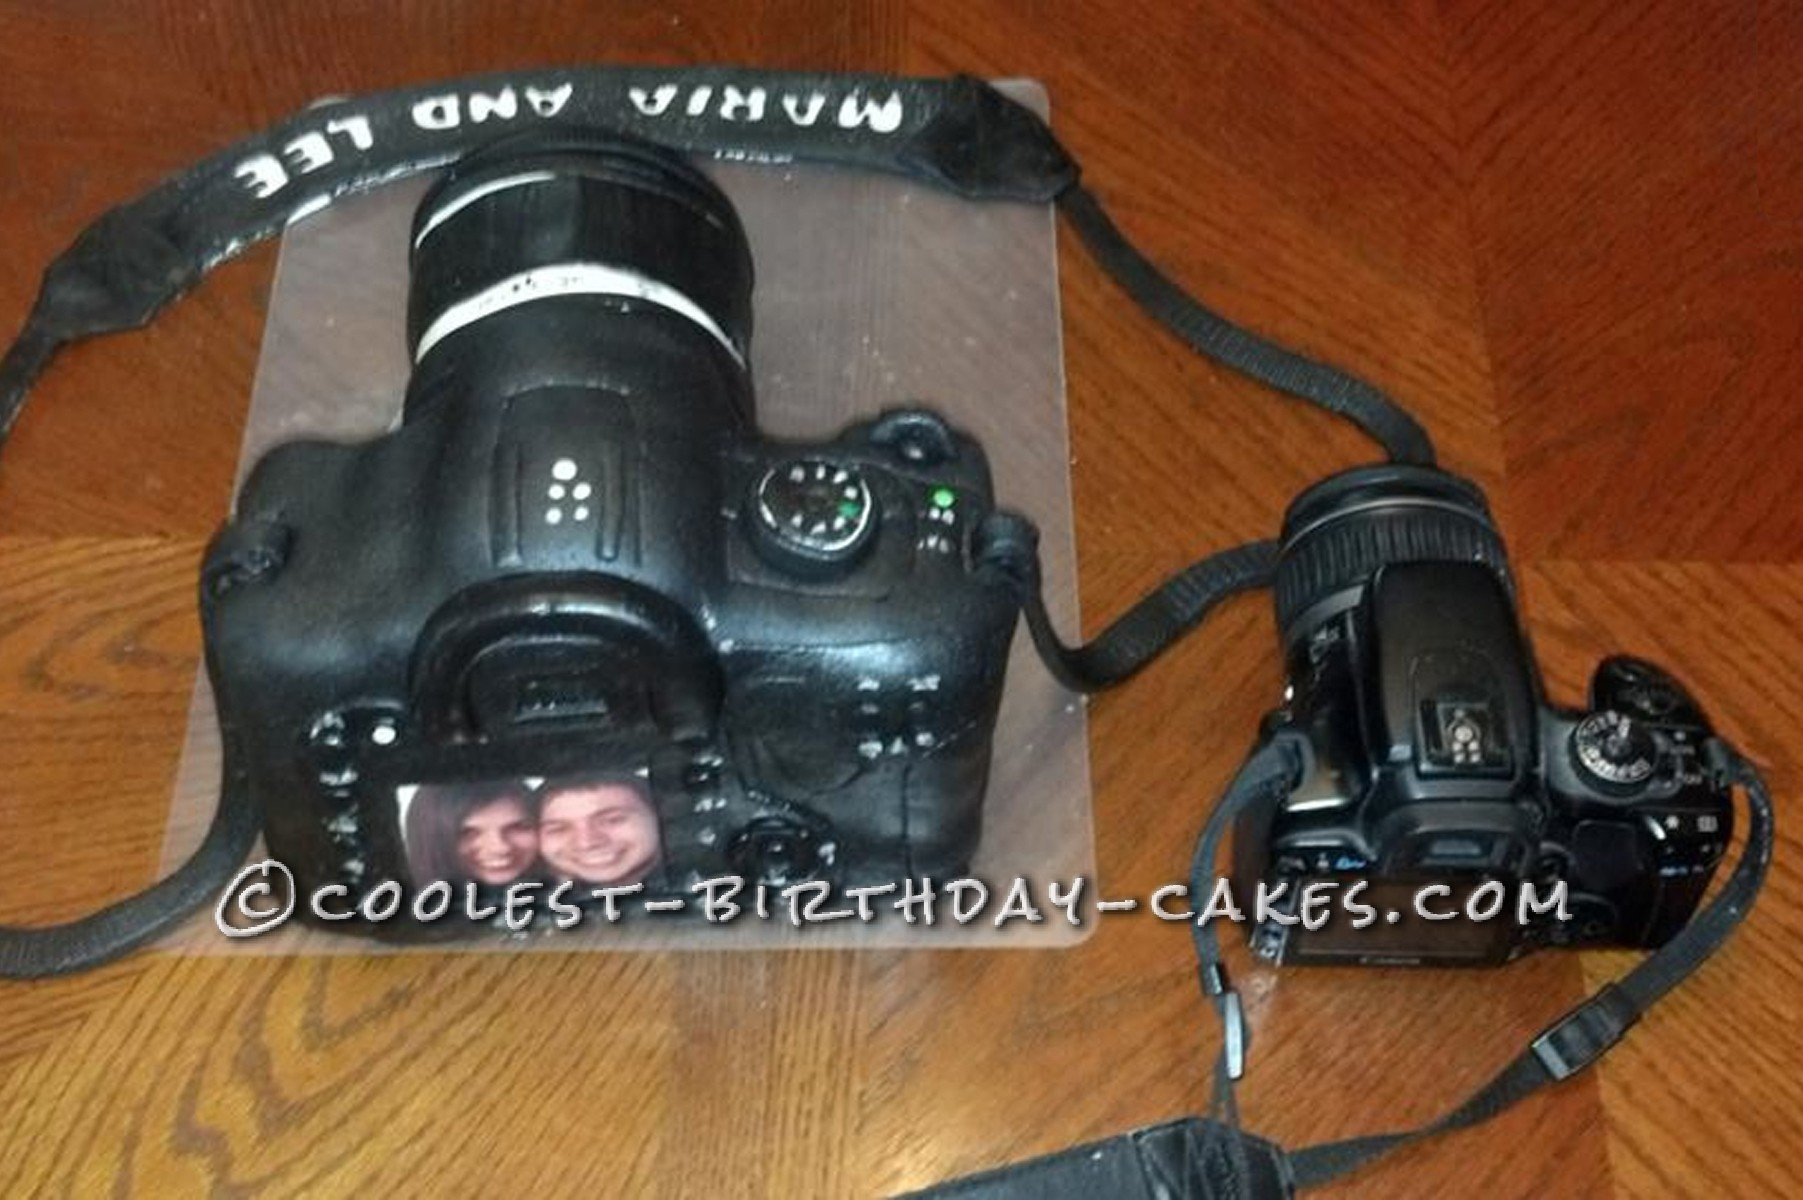 Back Top of Camera Cake in comparision with a real camera